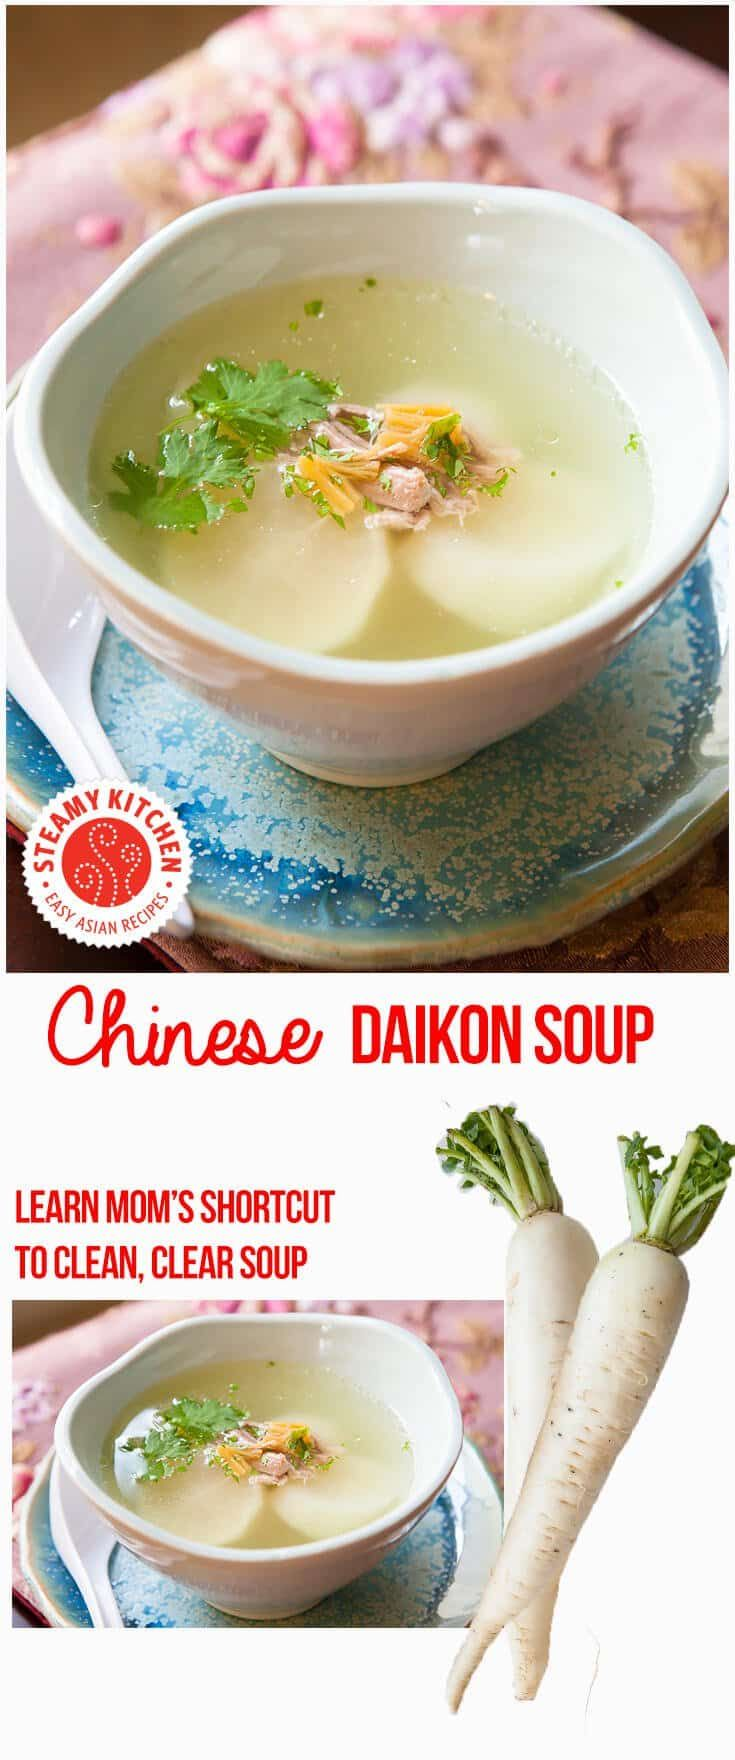 Learn to make this Chinese Daikon Soup recipe - plus Mom's secret to clean, clear broth. ~ https://steamykitchen.com